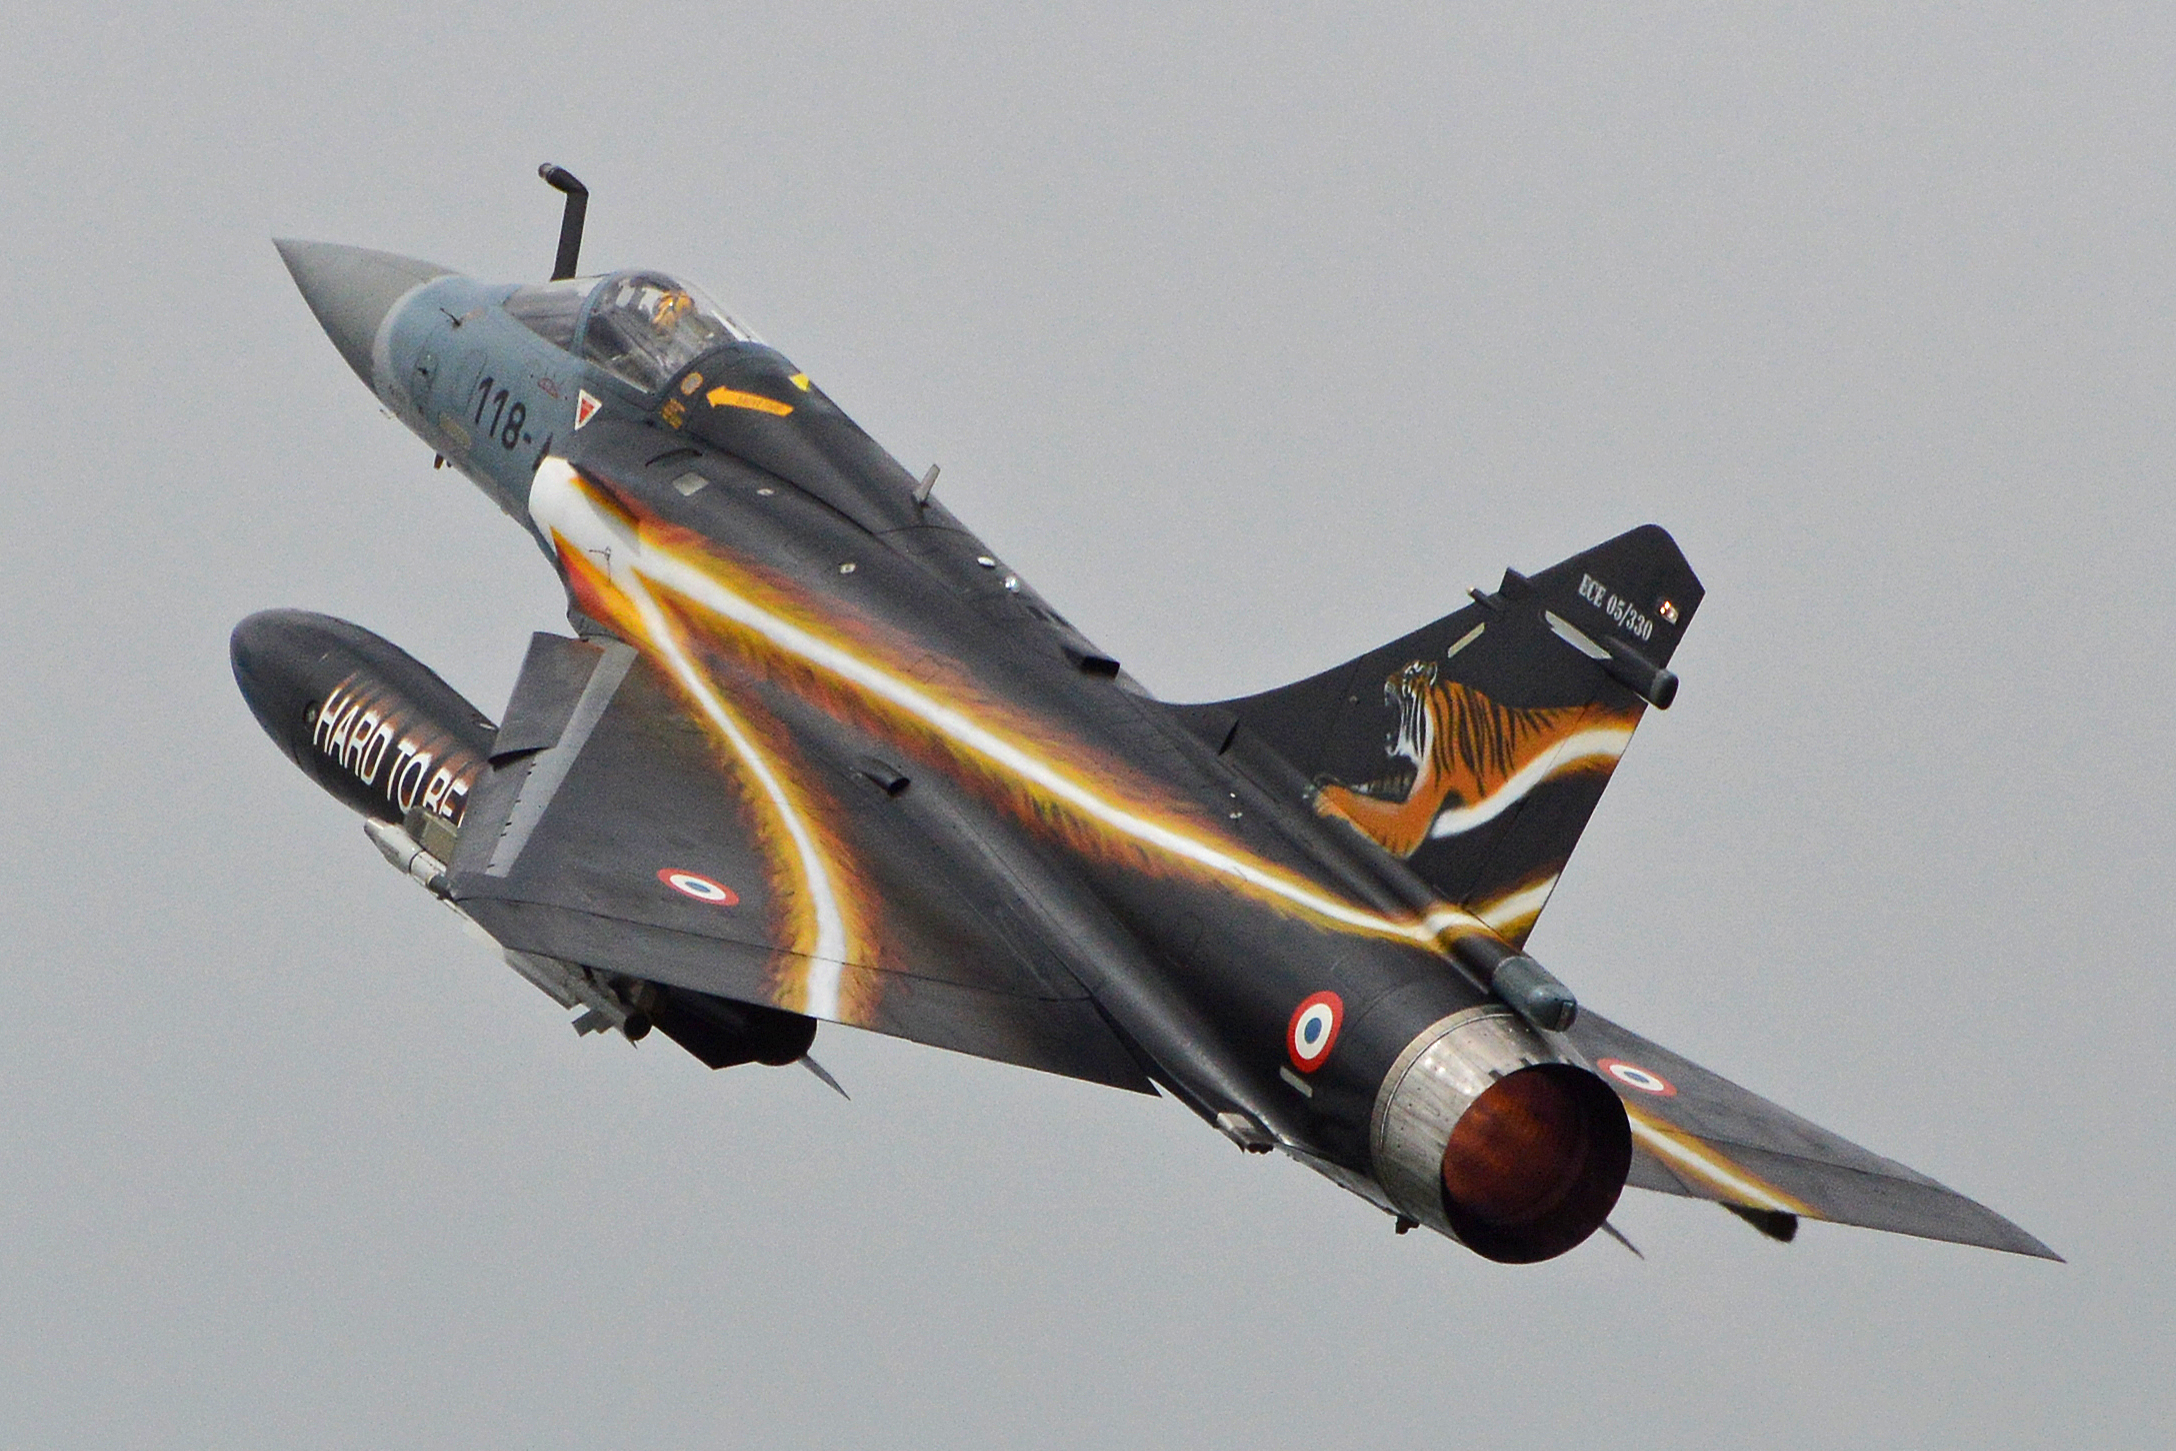 File:Dassault Mirage 2000-5F '51 - 118-AS' 'Hard to be Humble' (14767945661).jpg - Wikimedia Commons